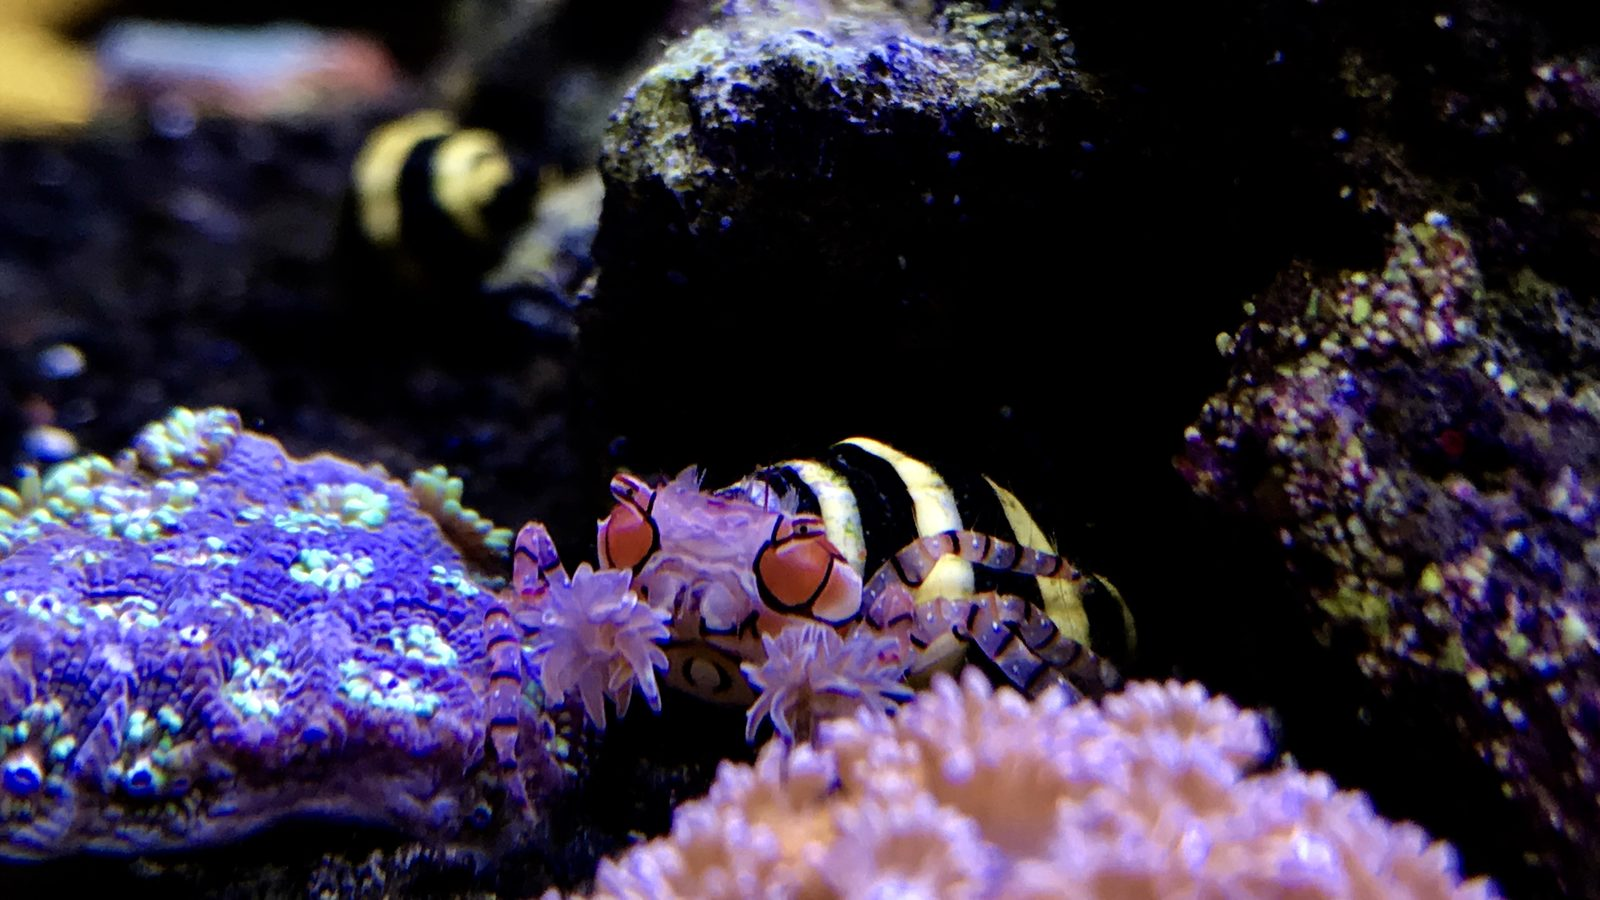 Pom Pom crab between flower pot corals